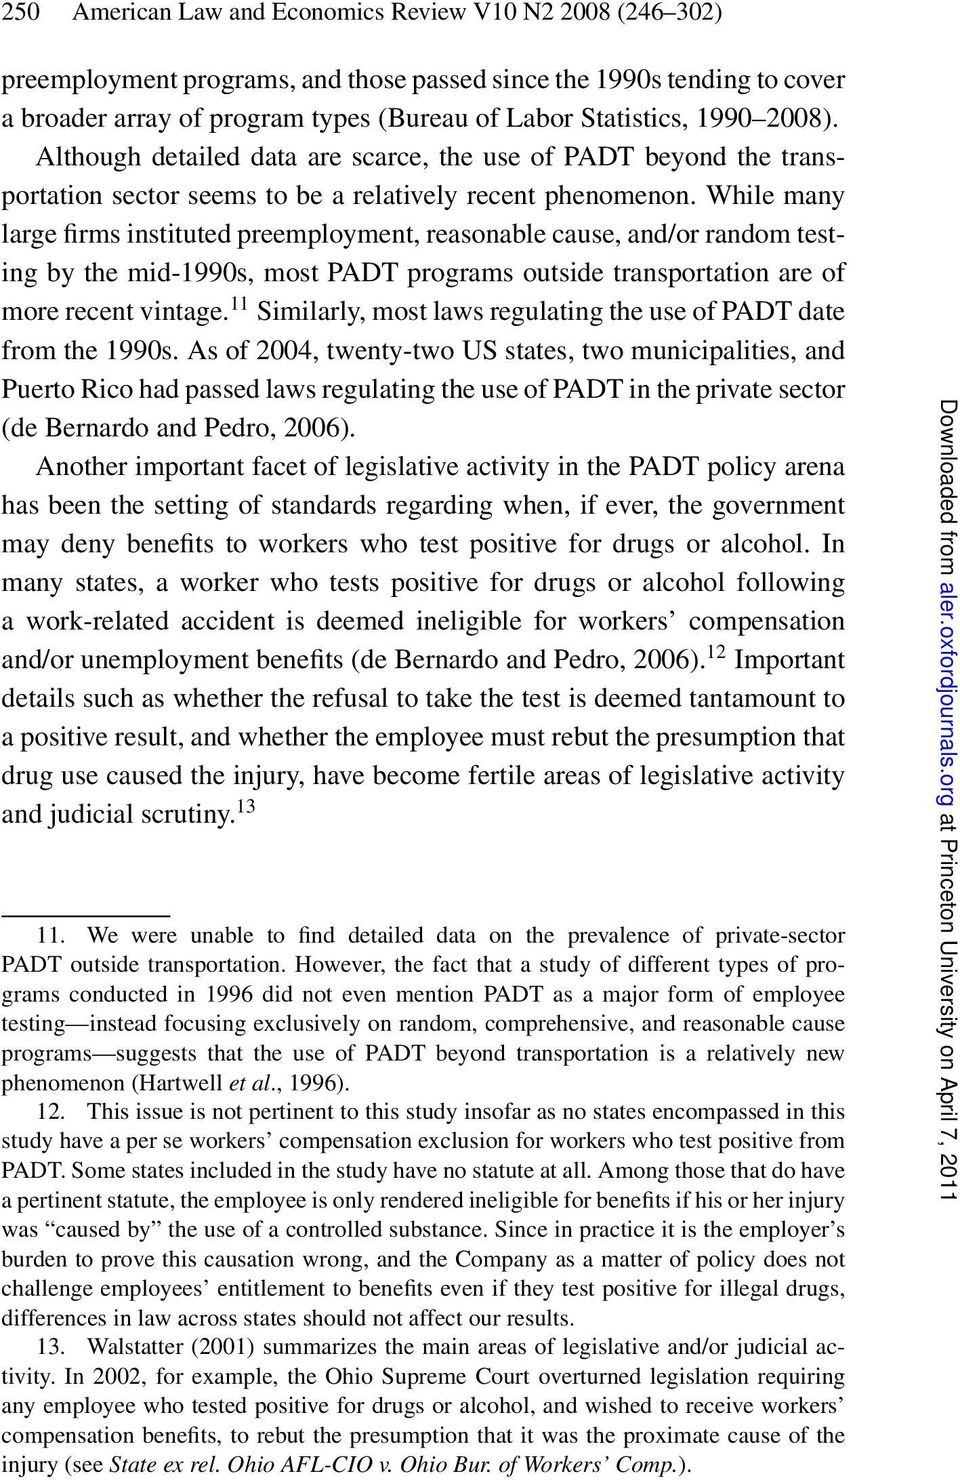 While many large firms instituted preemployment, reasonable cause, and/or random testing by the mid-1990s, most PADT programs outside transportation are of more recent vintage.